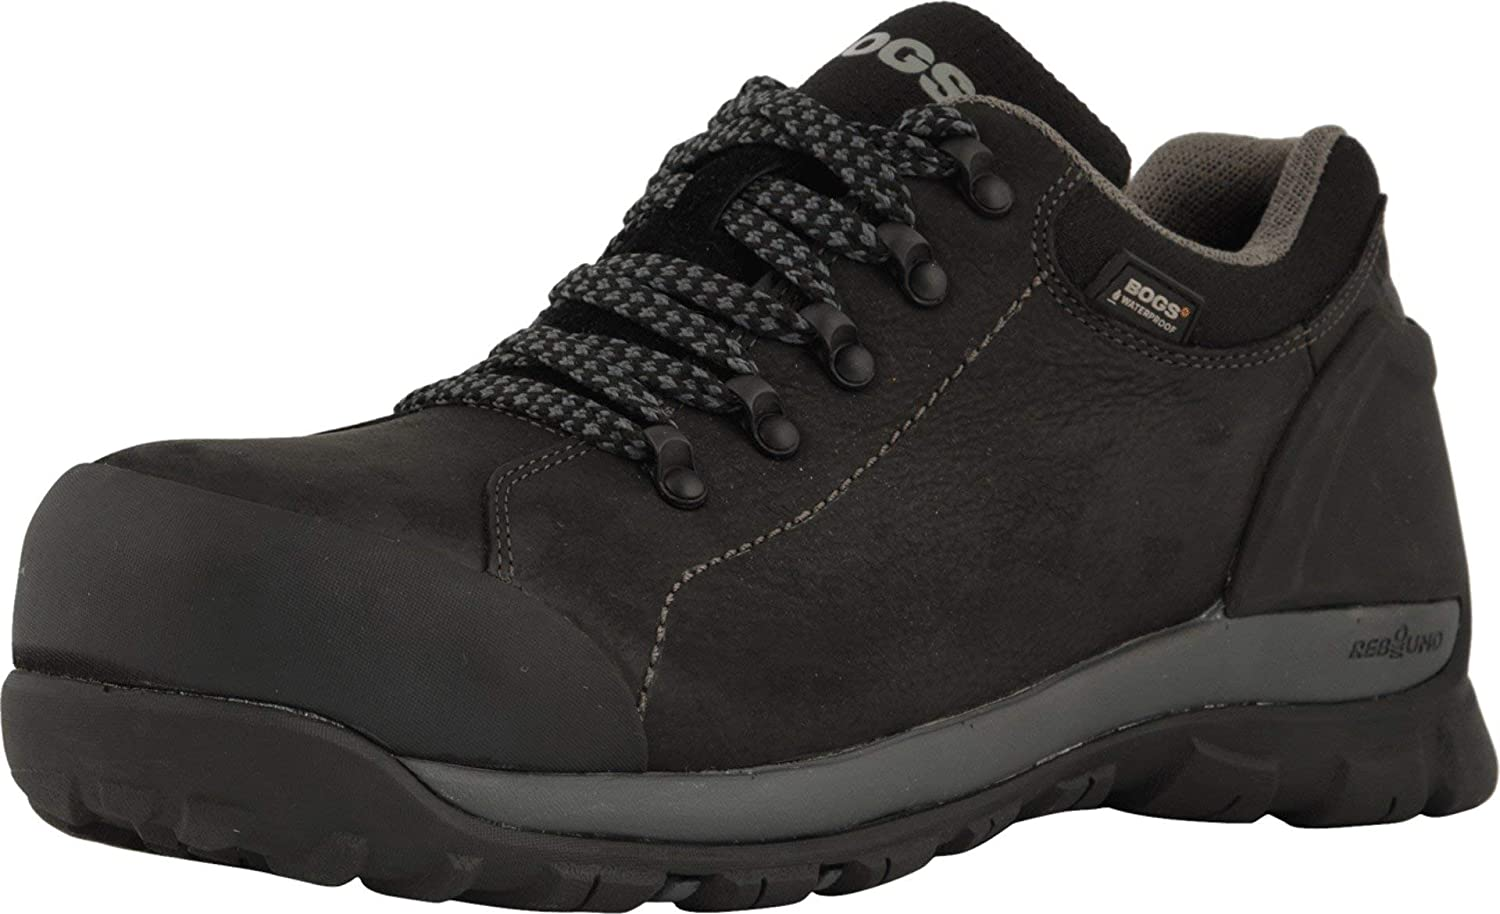 Image of BOGS Men's Foundation Low Punctureproof Waterproof Fire and Safety Boot Fire & Safety